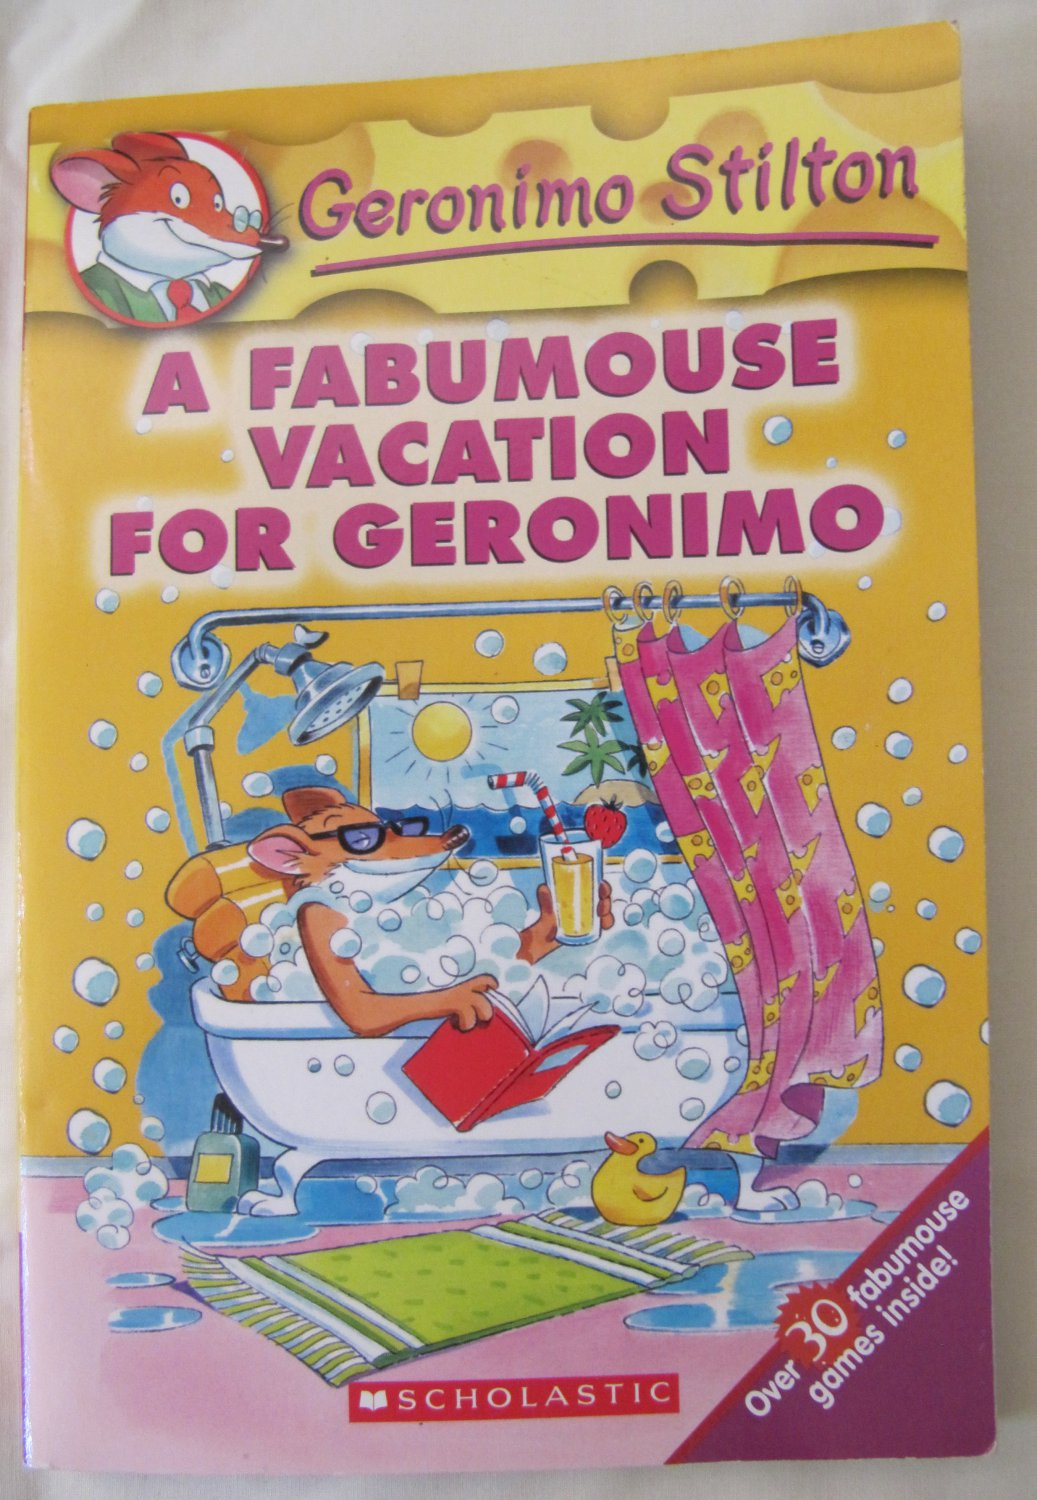 Geronimo Stilton A Fabumouse Vacation for Geronimo Children's Paperback Book Color Illust